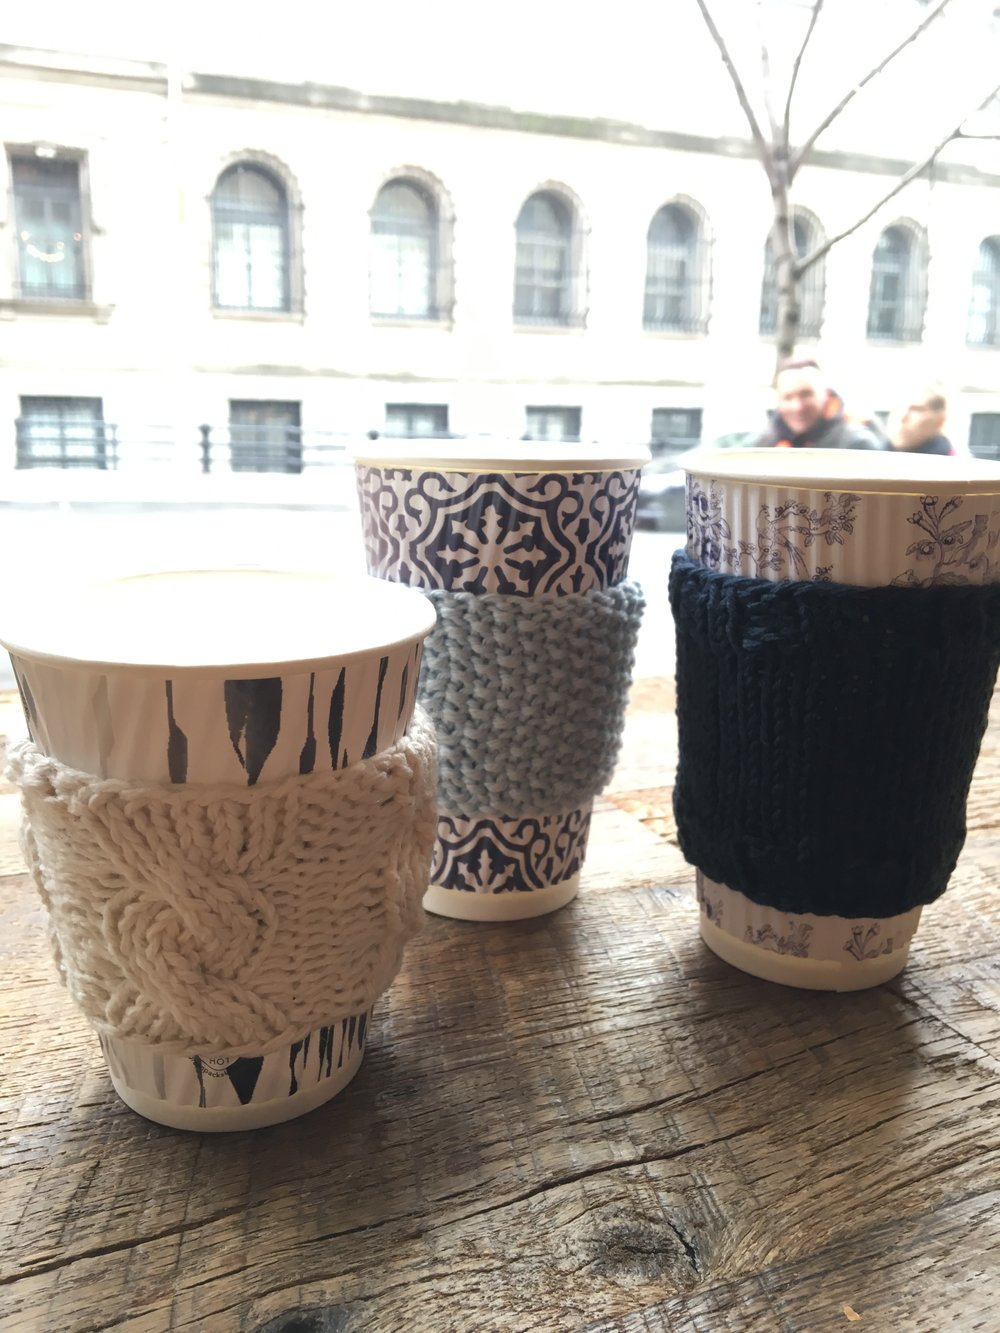 A few coffee mug covers to keep the hands cozy! (How beautiful are Maman's custom designed cups?!)